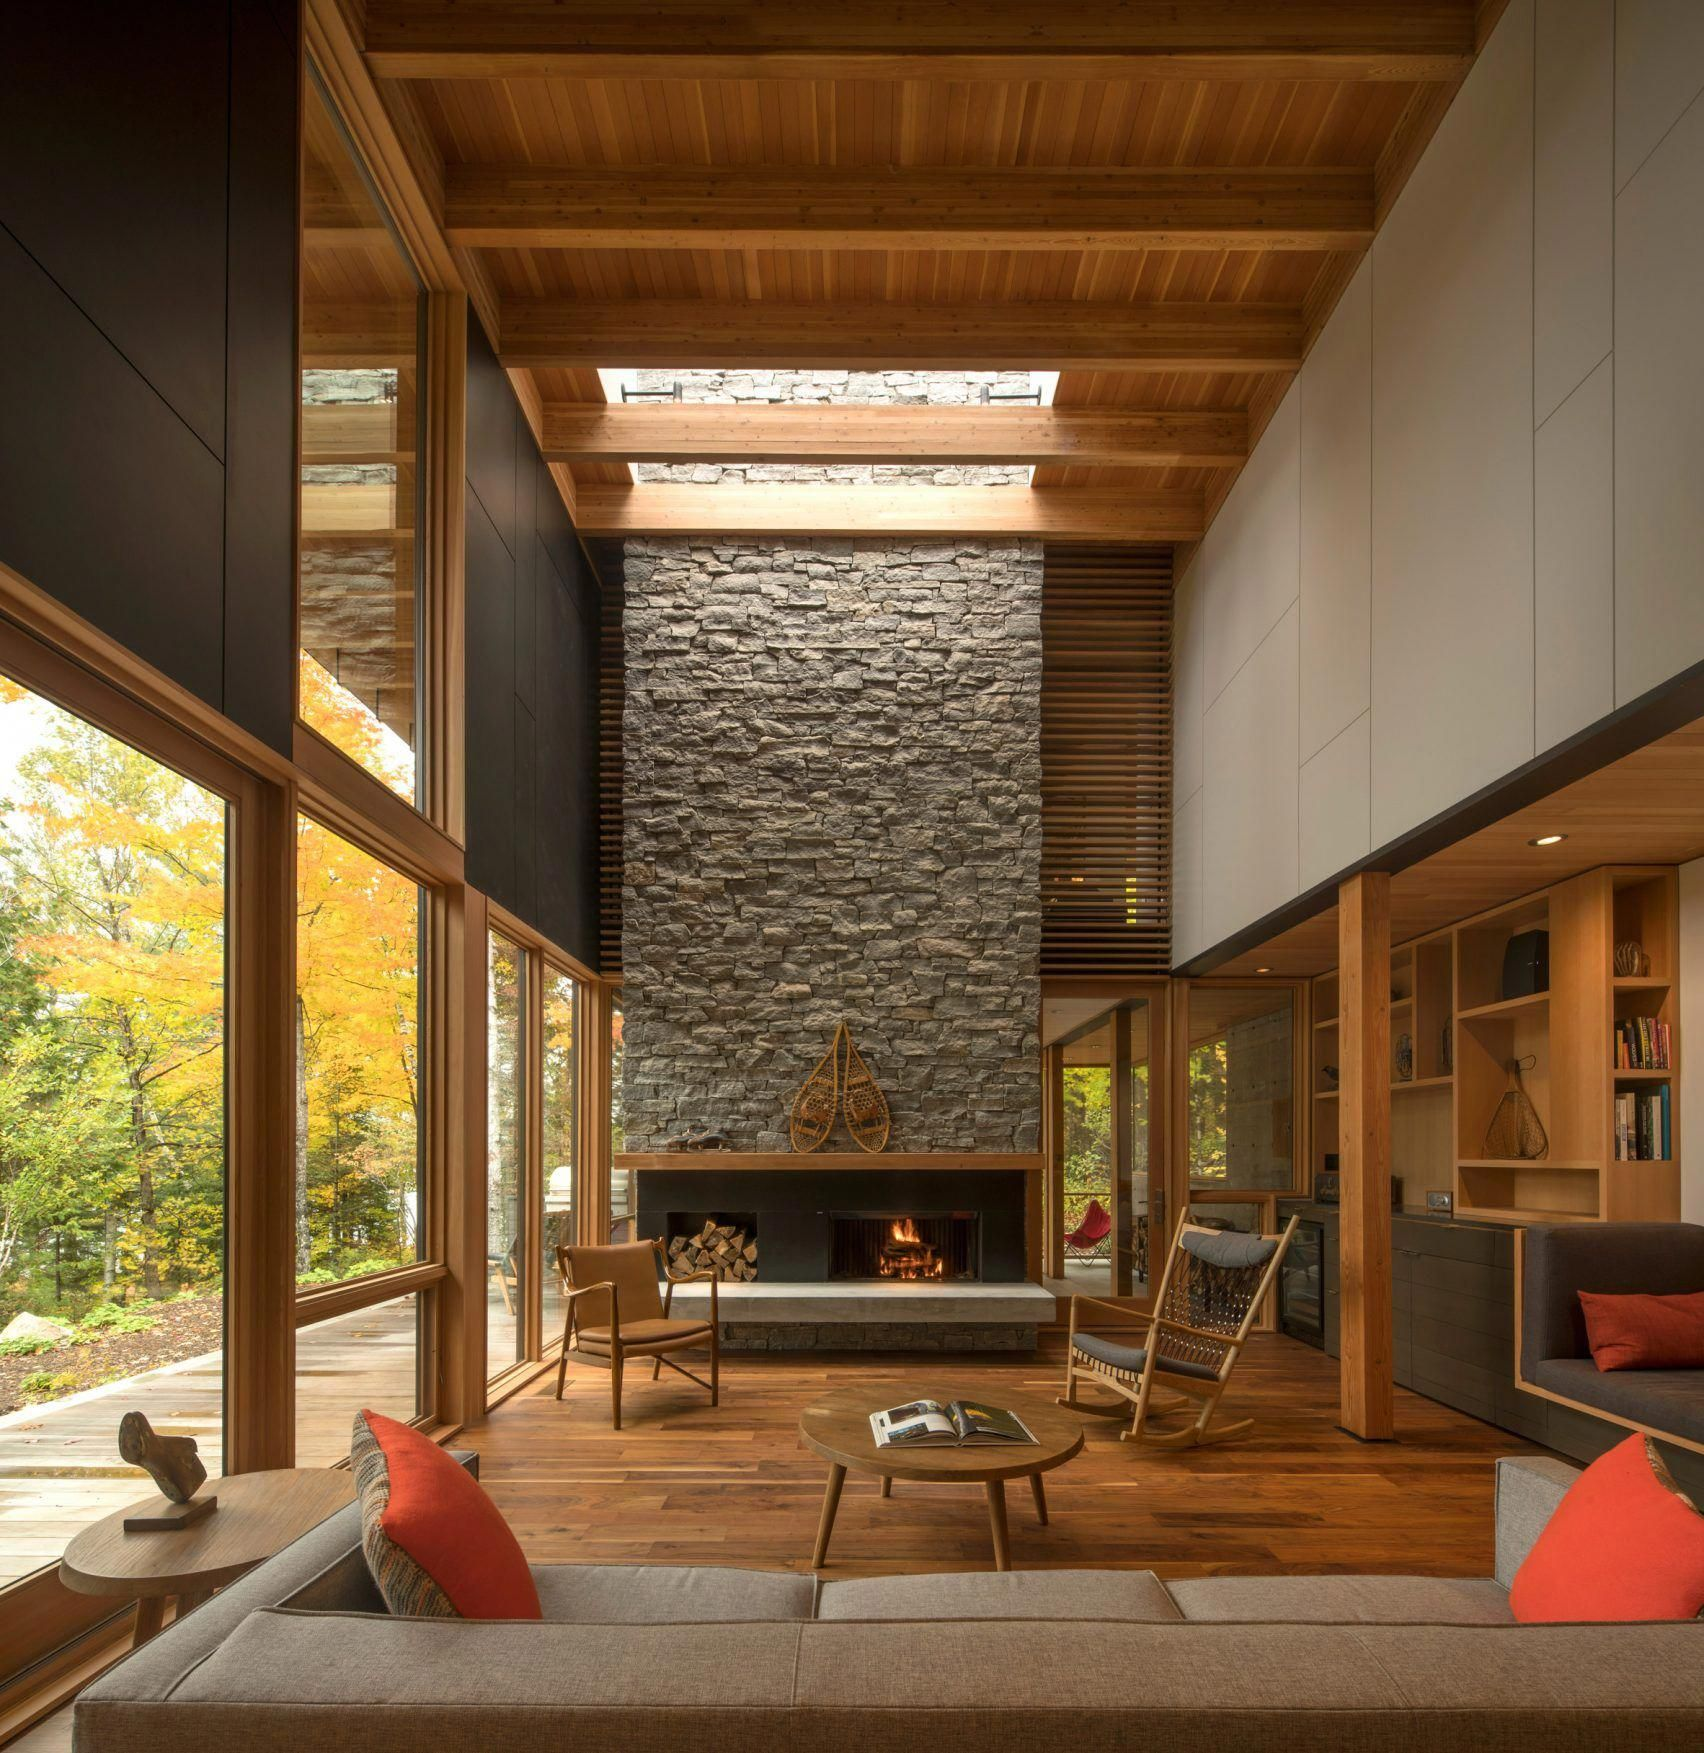 Montana Ranch House Embraces Its Striking River Valley: The Bear Stand By Bohlin Cywinski Jackson